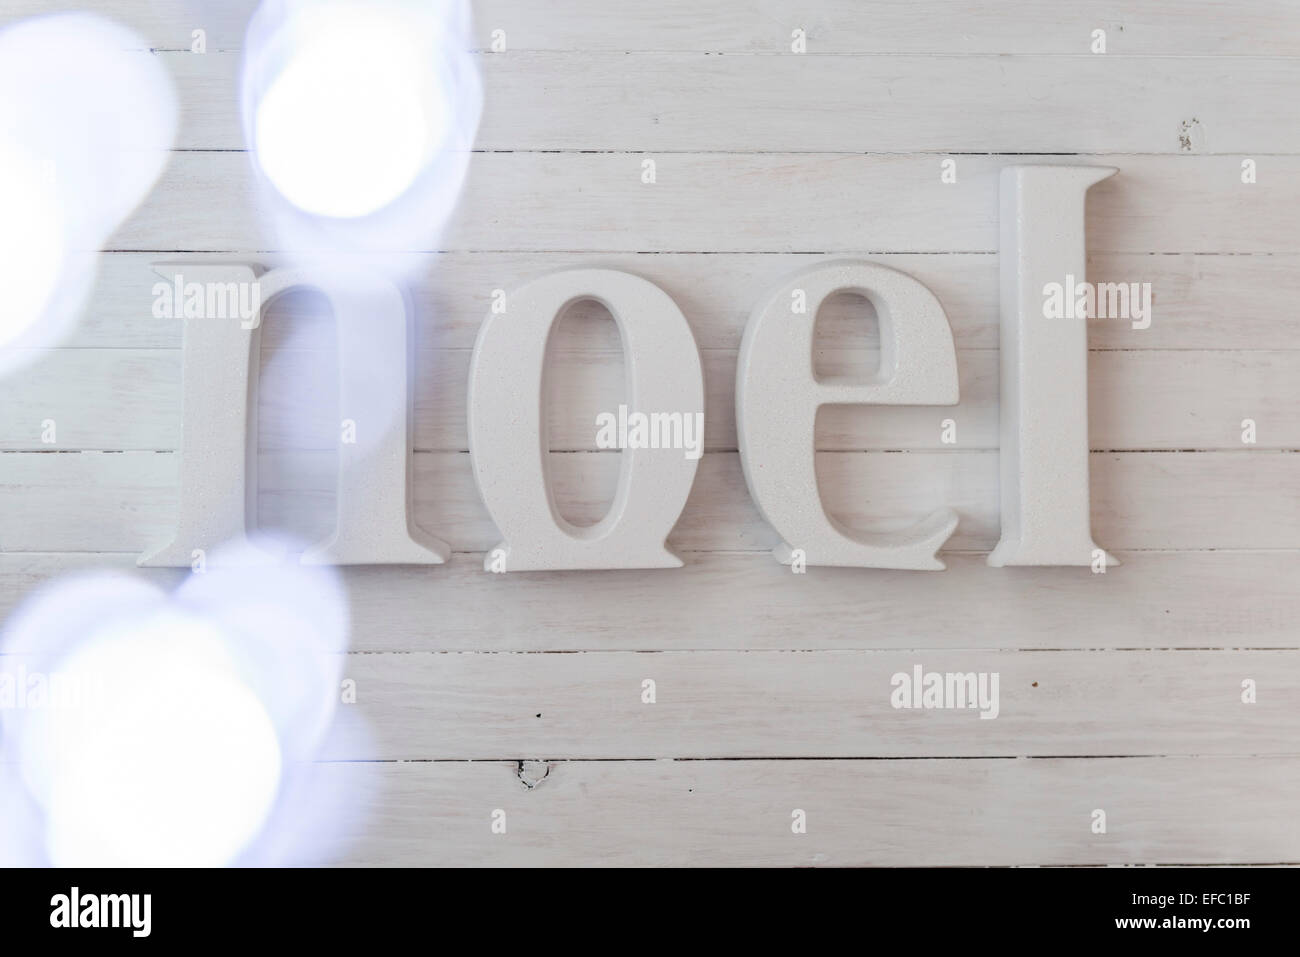 Noel Christmas Lettering with festive lights - Stock Image